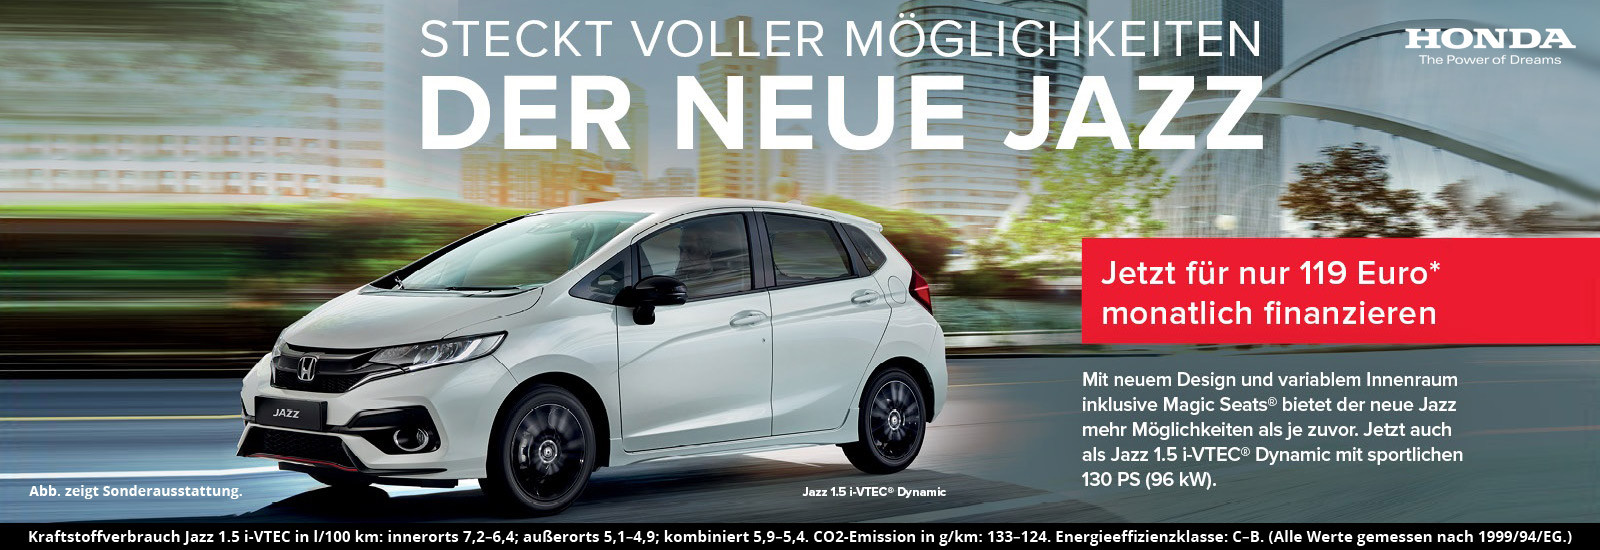 honda-jazz-2018-slider-02.jpg